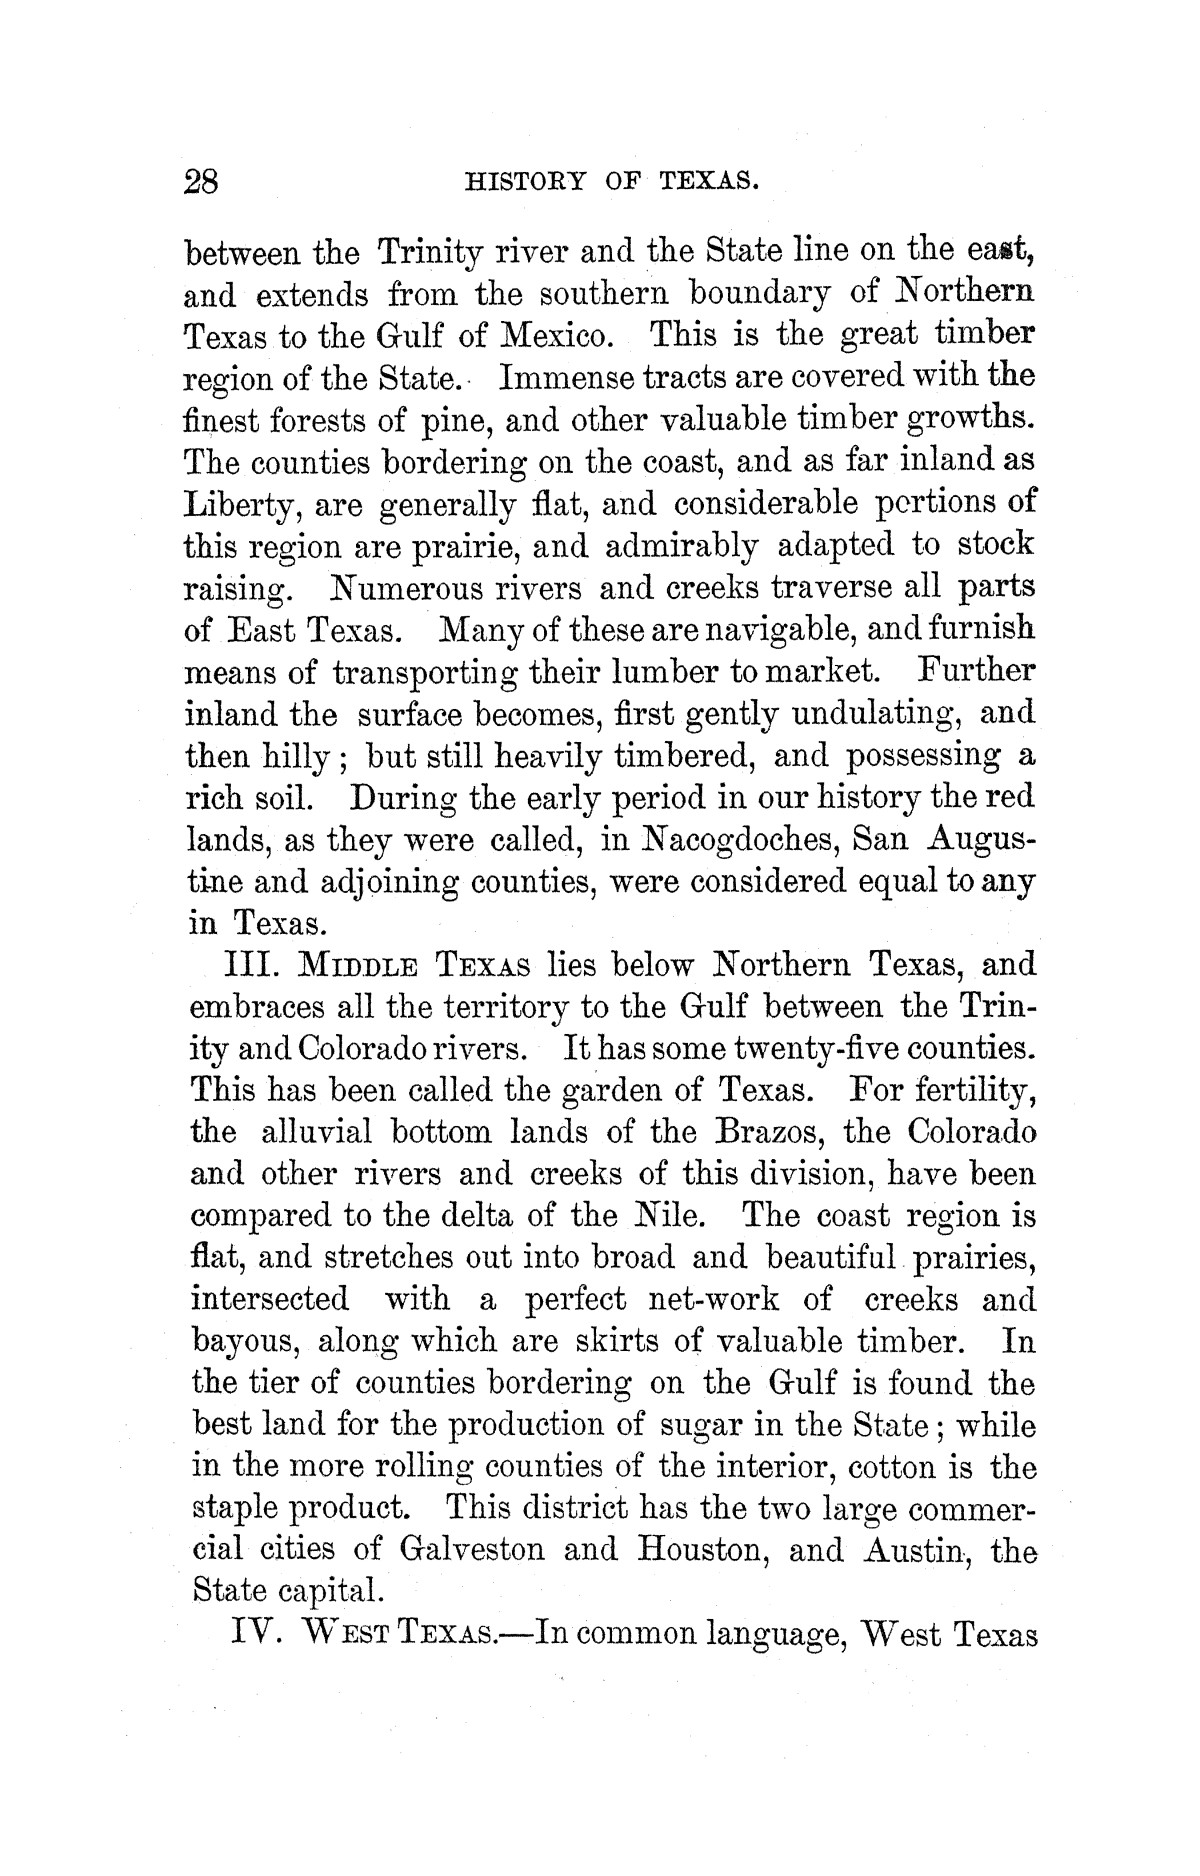 A pictorial history of Texas, from the earliest visits of European adventurers, to A.D. 1879. Embracing the periods of missions, colonization, the revolution the republic, and the state; also, a topographical description of the country ... together with its Indian tribes and their wars, and biographical sketches of hundreds of its leading historical characters. Also, a list of the countries, with historical and topical notes, and descriptions of the public institutions of the state.                                                                                                      [Sequence #]: 34 of 859